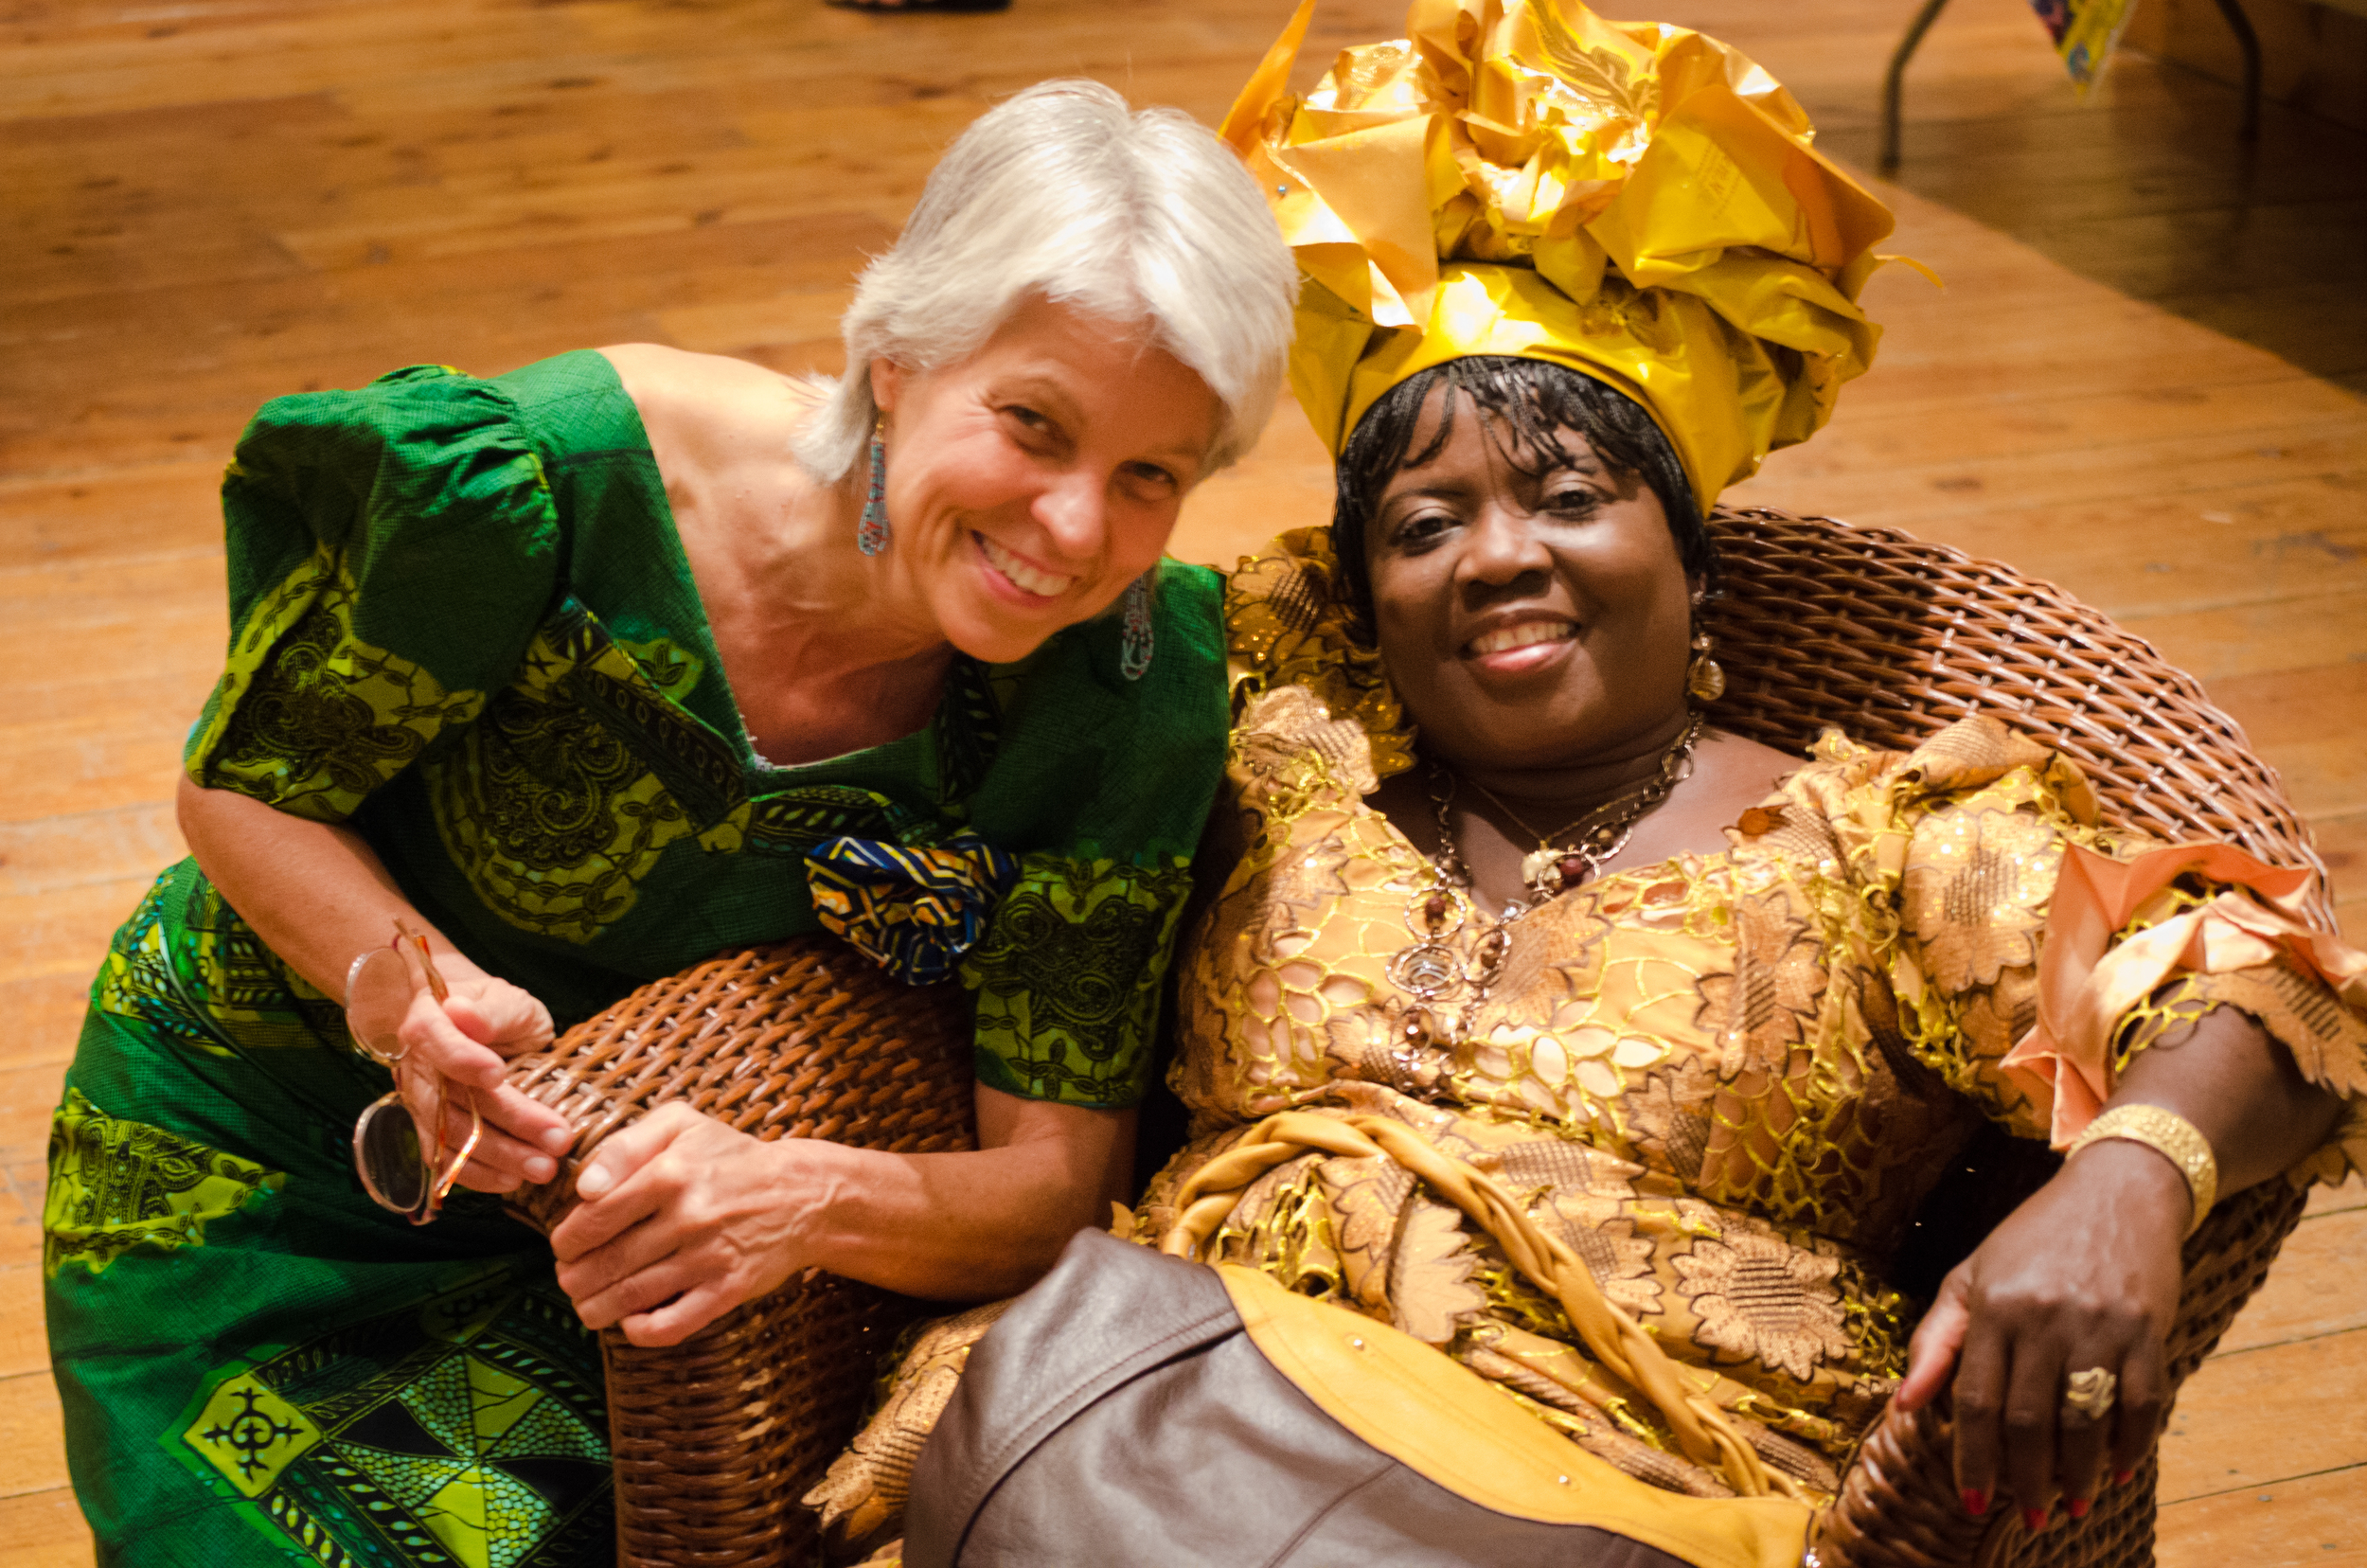 Co-founder Ann Marie, left, was born and raised in DR Congo